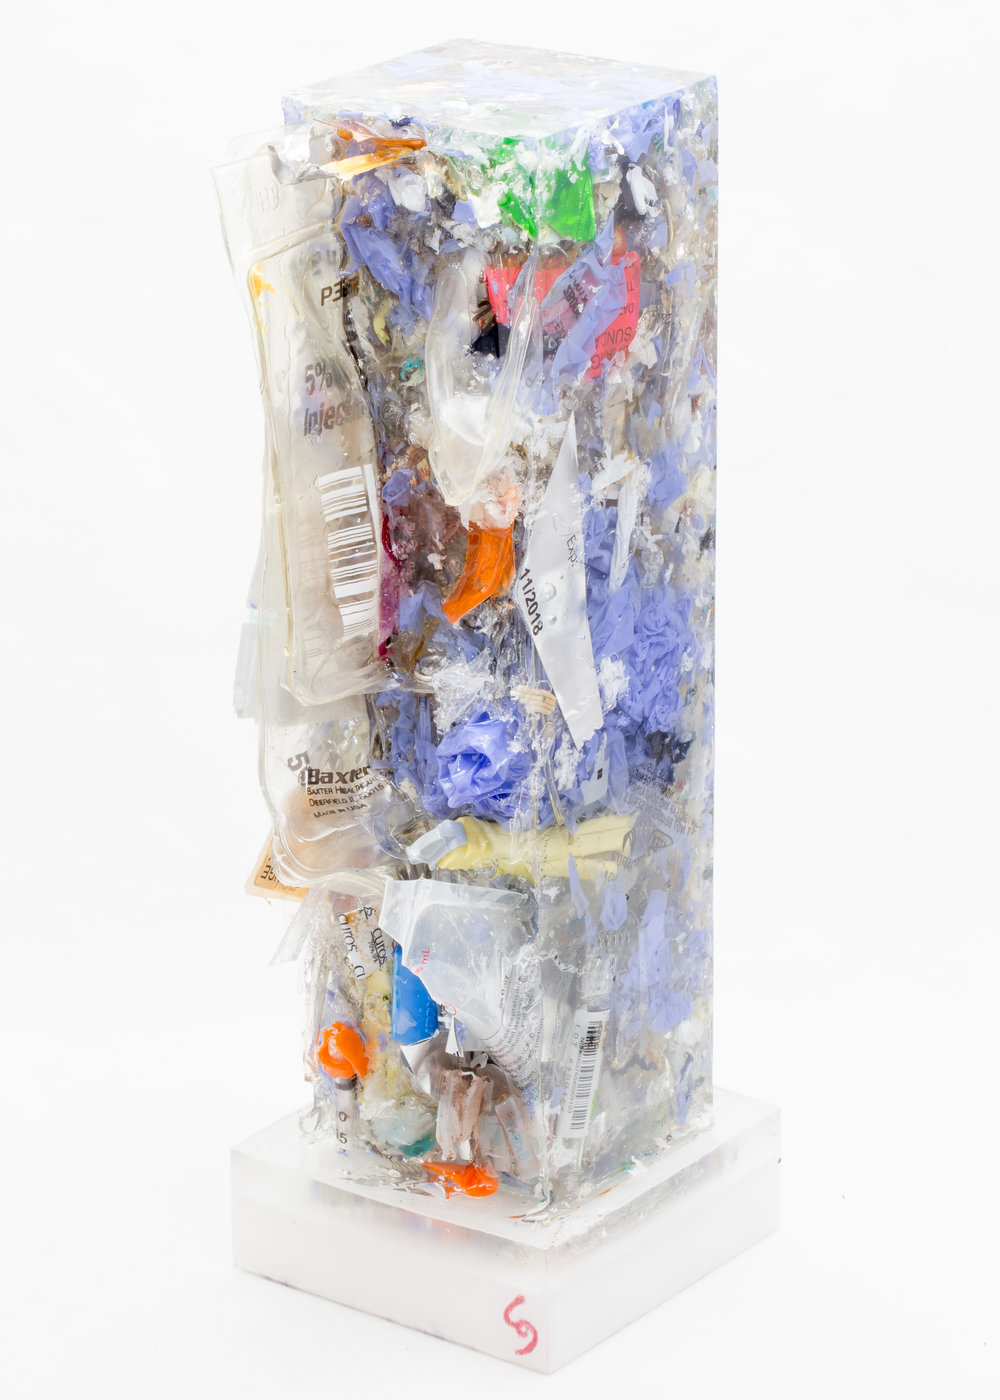 Generation 3 (Nurse) - Generation 3 Standardized Trash Sculpture Nurse series. Trash is straight from the ward. This is the weight of saving lives.